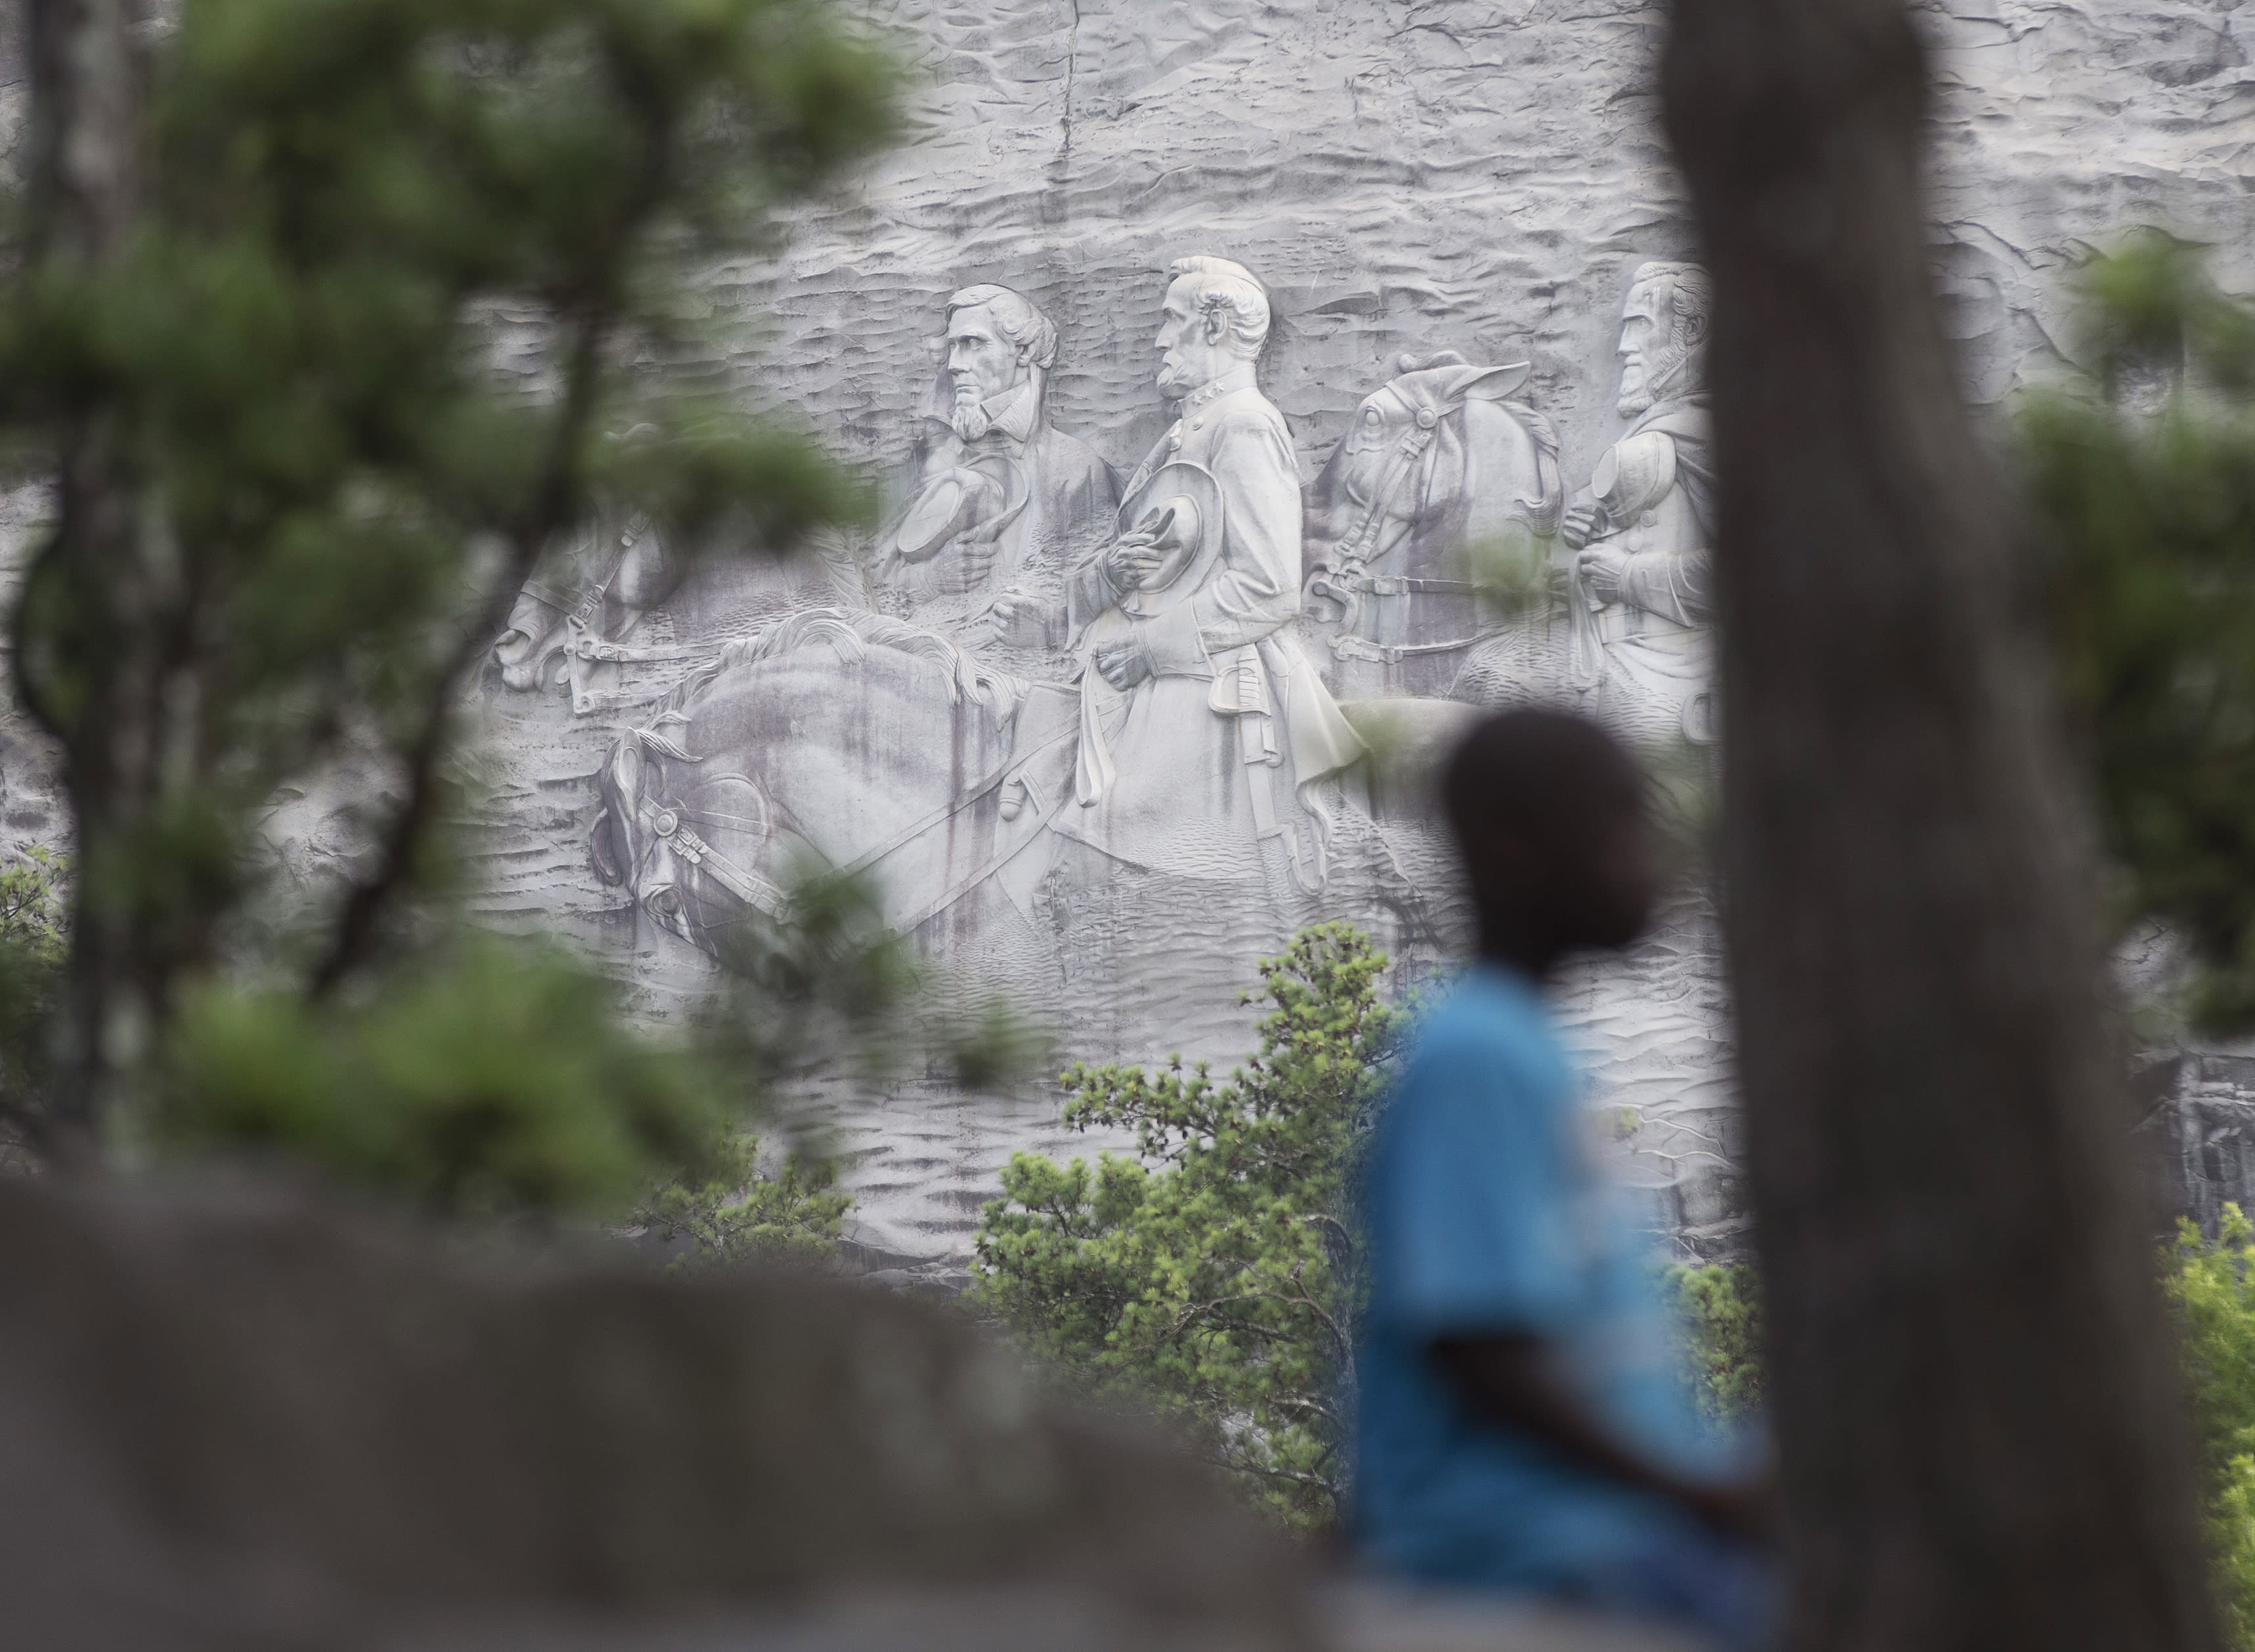 Monument to honor King planned for Georgia's Stone Mountain